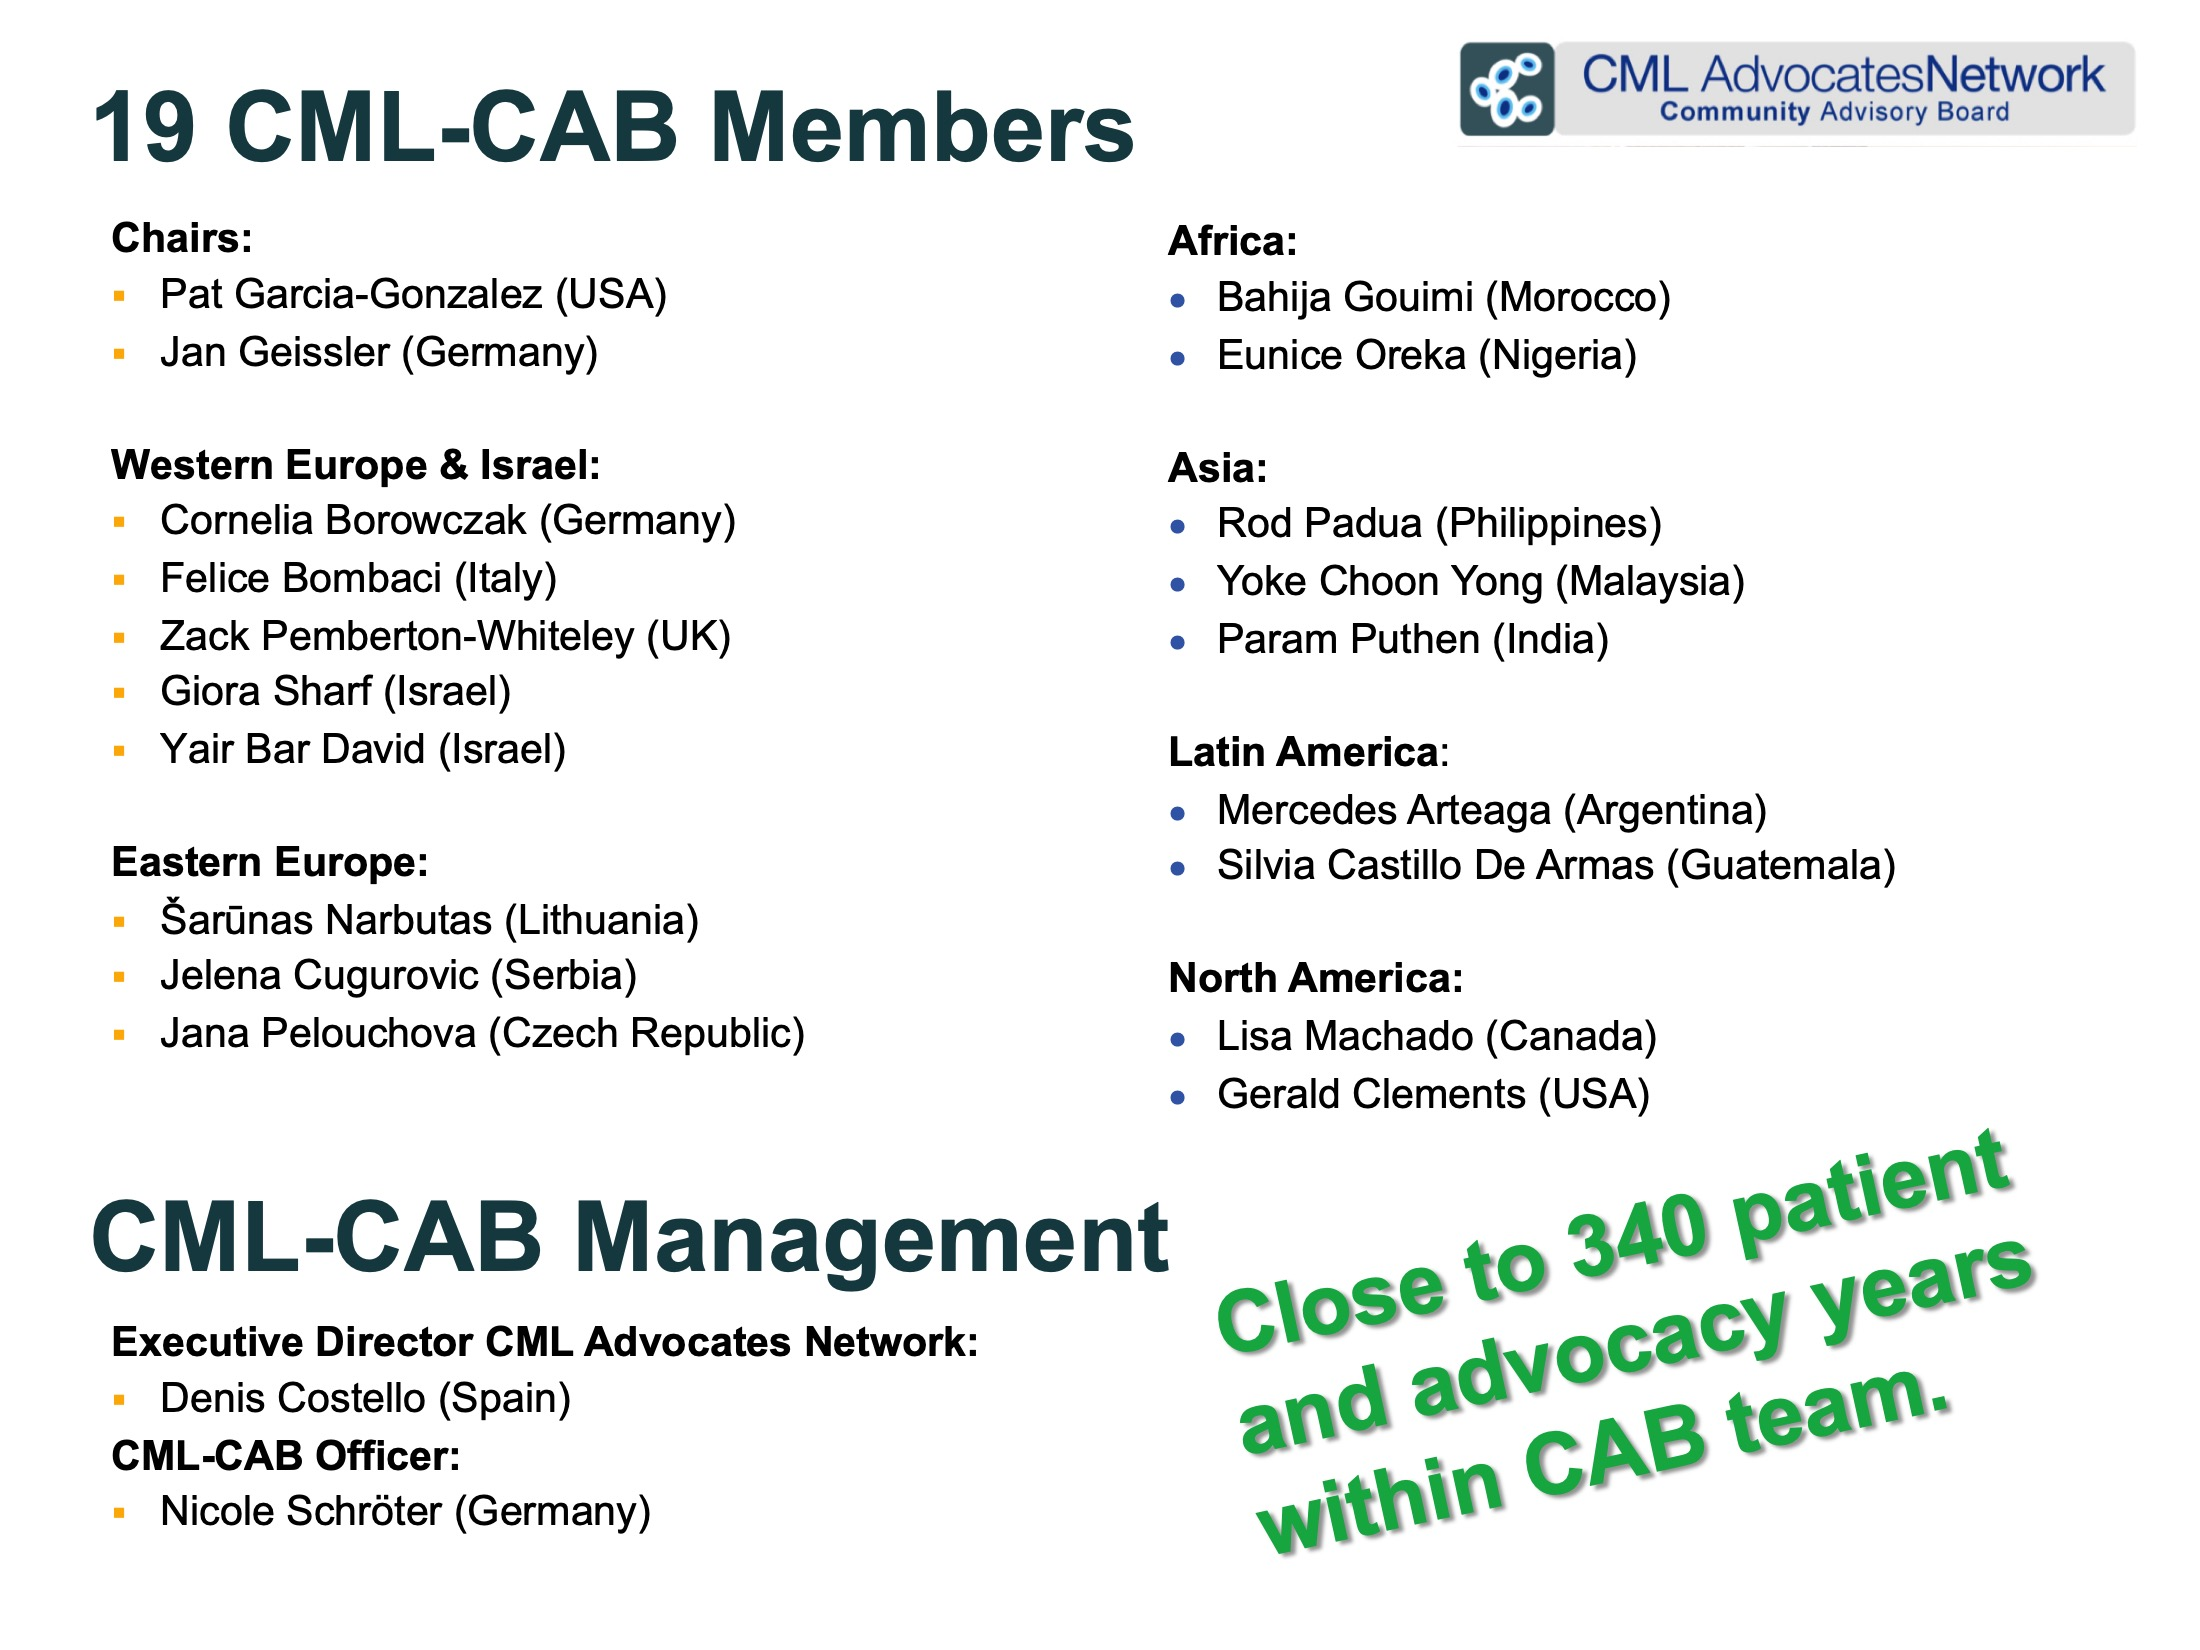 2021 03 31 CML CAB Composition Update2